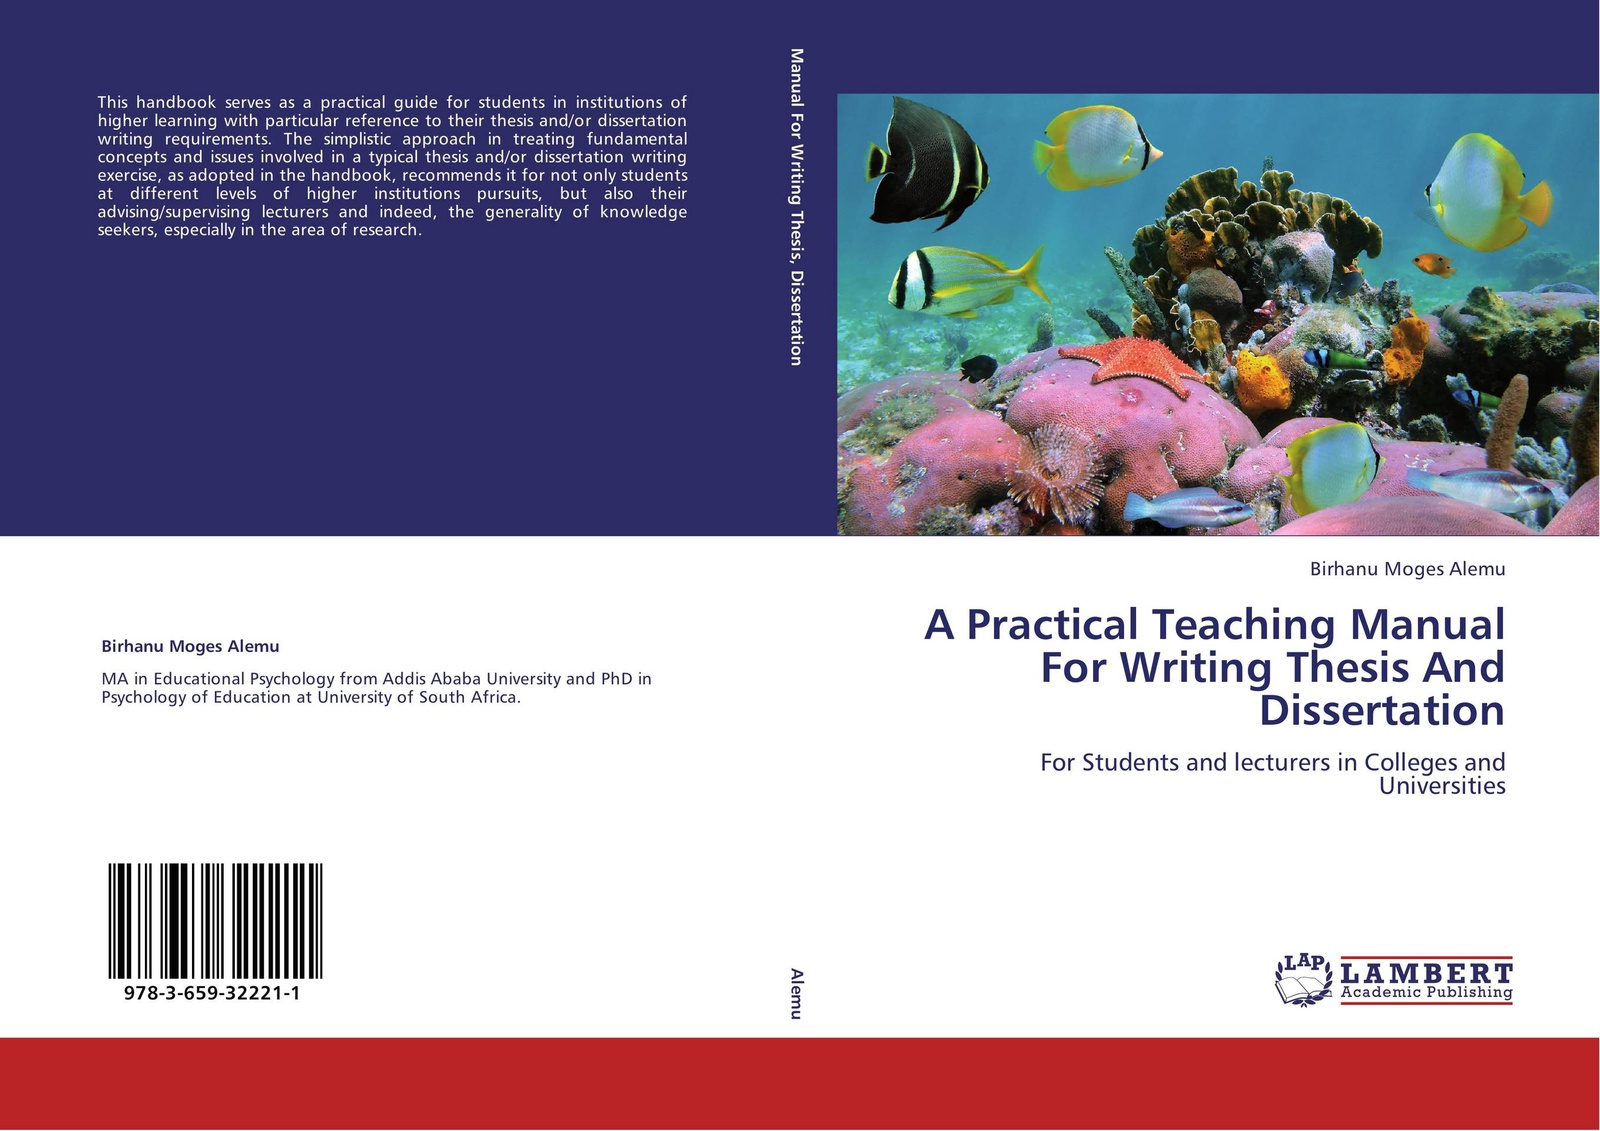 Birhanu Moges Alemu A Practical Teaching Manual For Writing Thesis And Dissertation цена